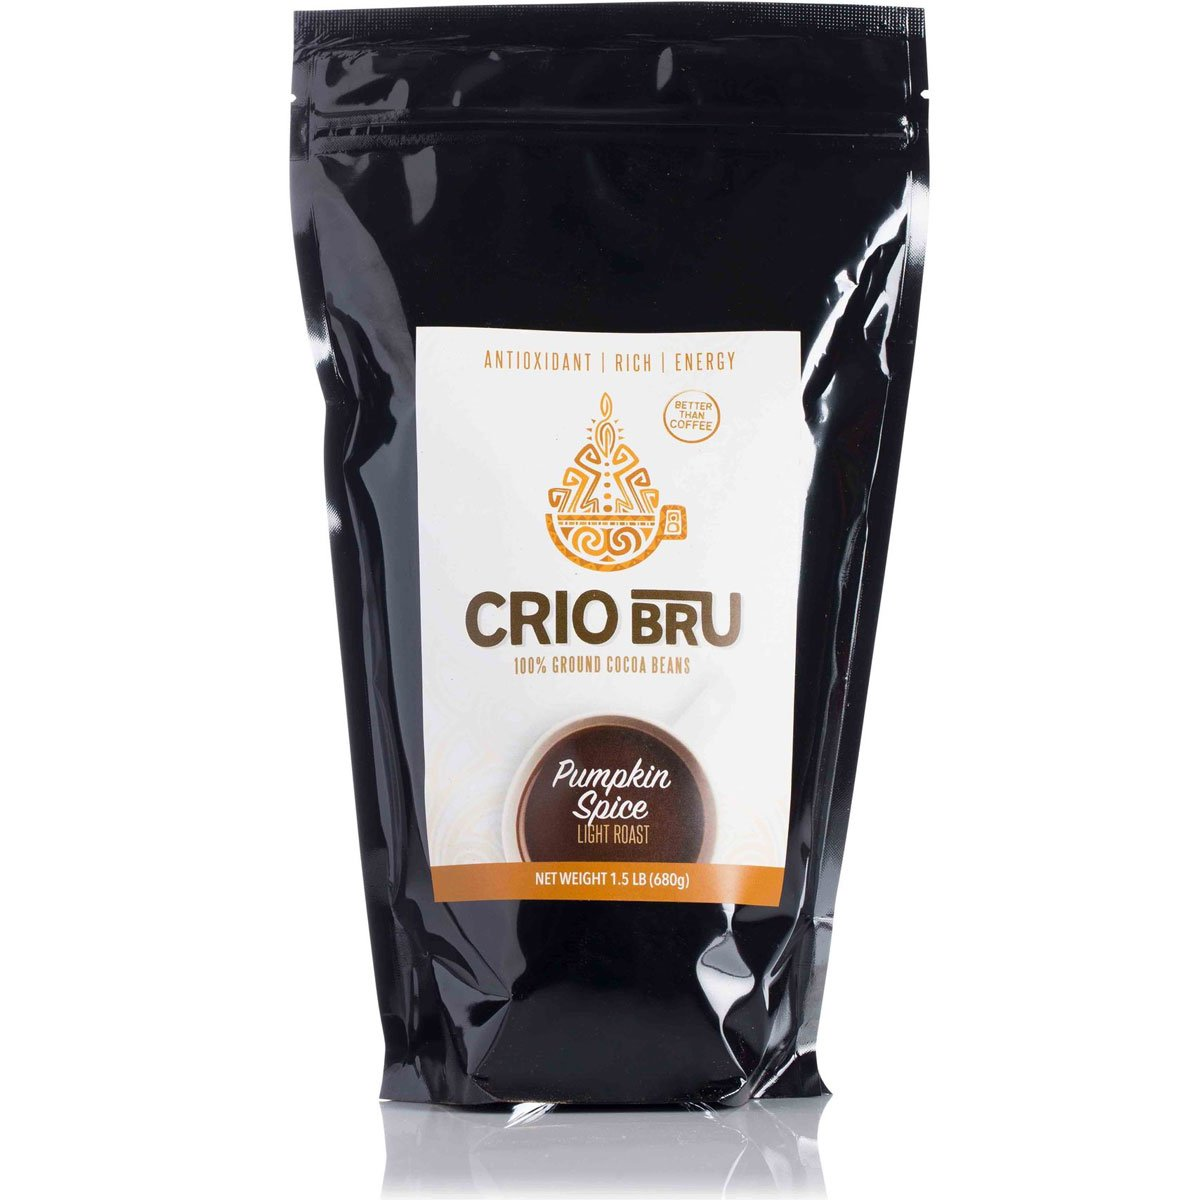 Crio Bru Pumpkin Spice Light Roast 24oz (1.5 lb) Bag | Organic Healthy Brewed Cacao Drink | Great Substitute to Herbal Tea and Coffee | 99% Caffeine Free Gluten Free Whole-30 Low Calorie Honest Energy